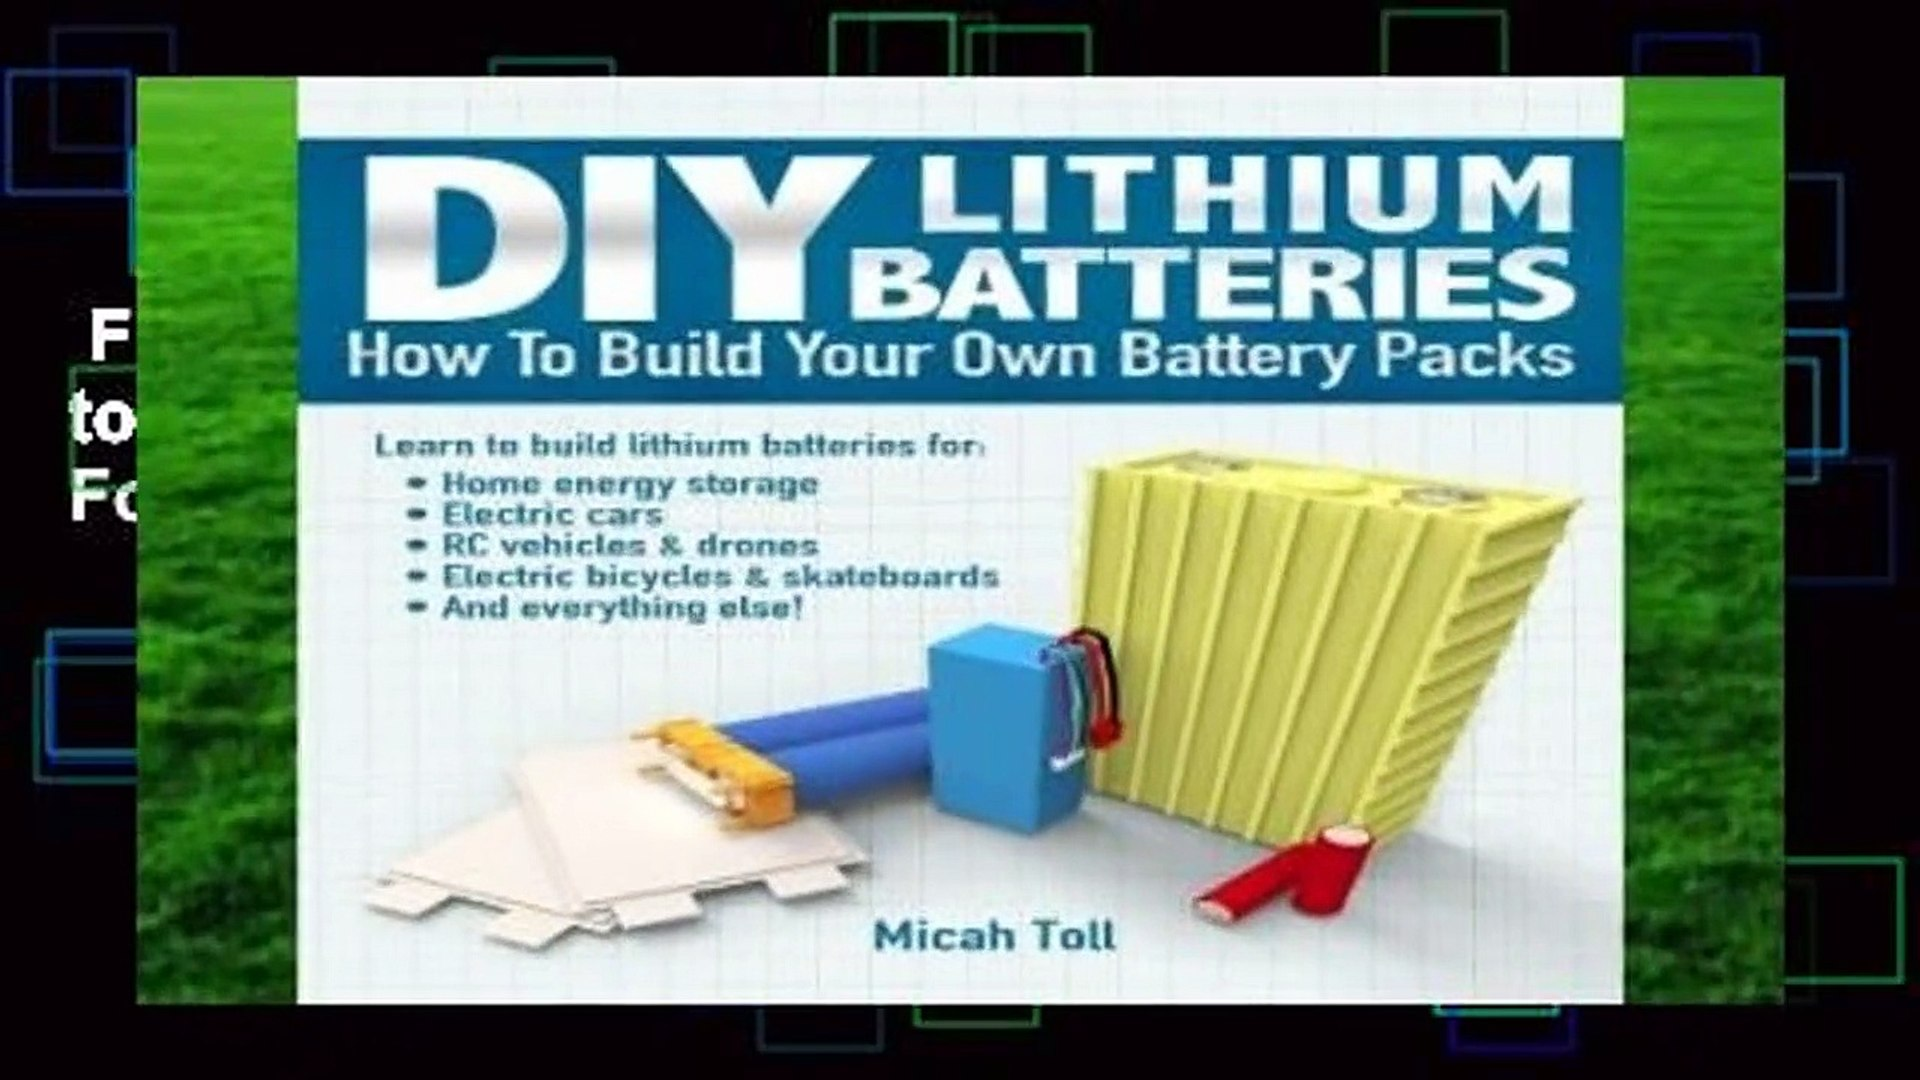 Full E-book  DIY Lithium Batteries: How to Build Your Own Battery Packs  For Kindle